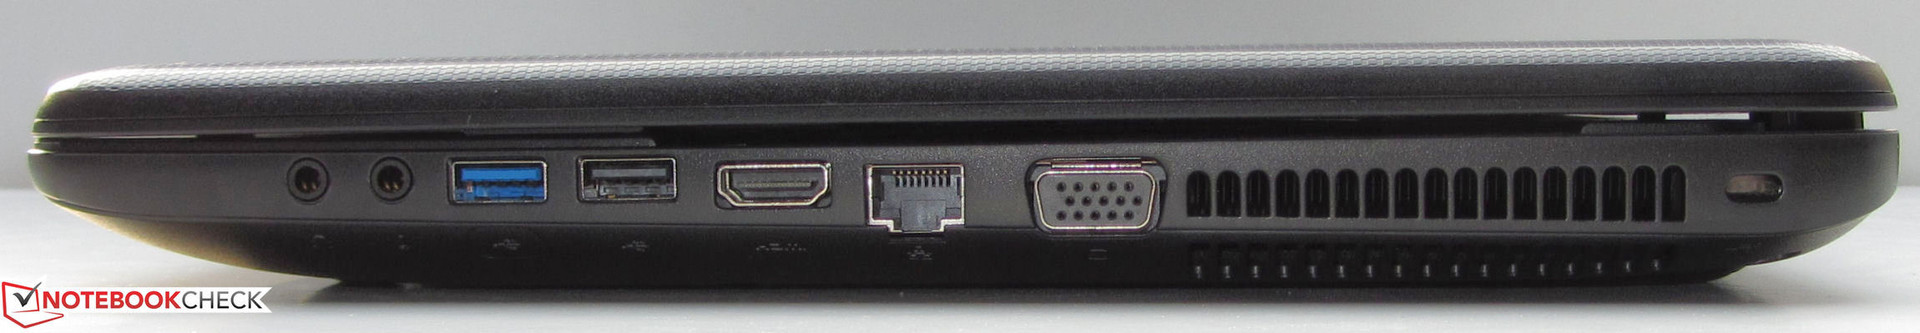 how to get the ethernet working